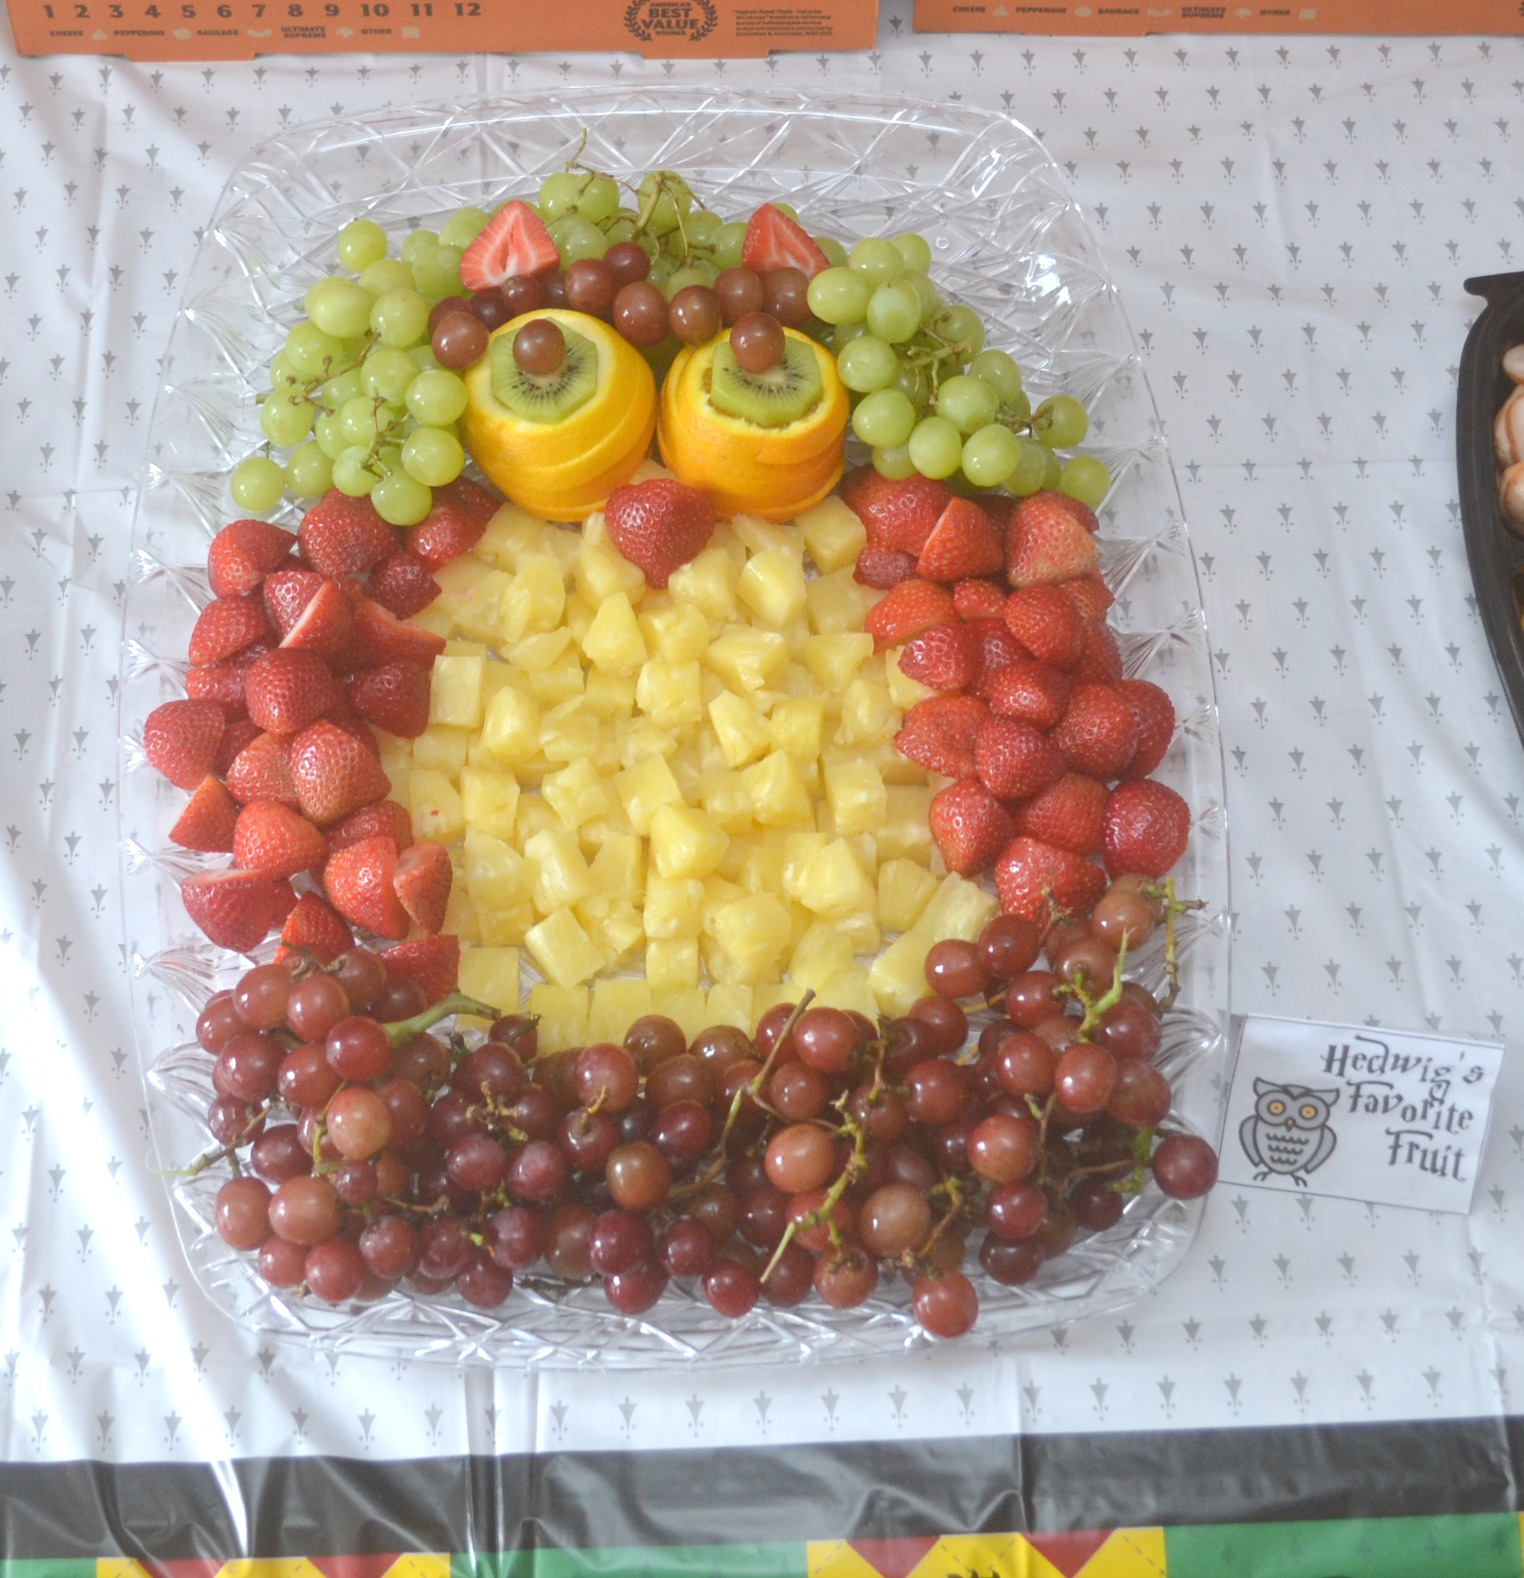 Hedwig's Favorite Fruit Tray. Harry Potter Fruit Tray